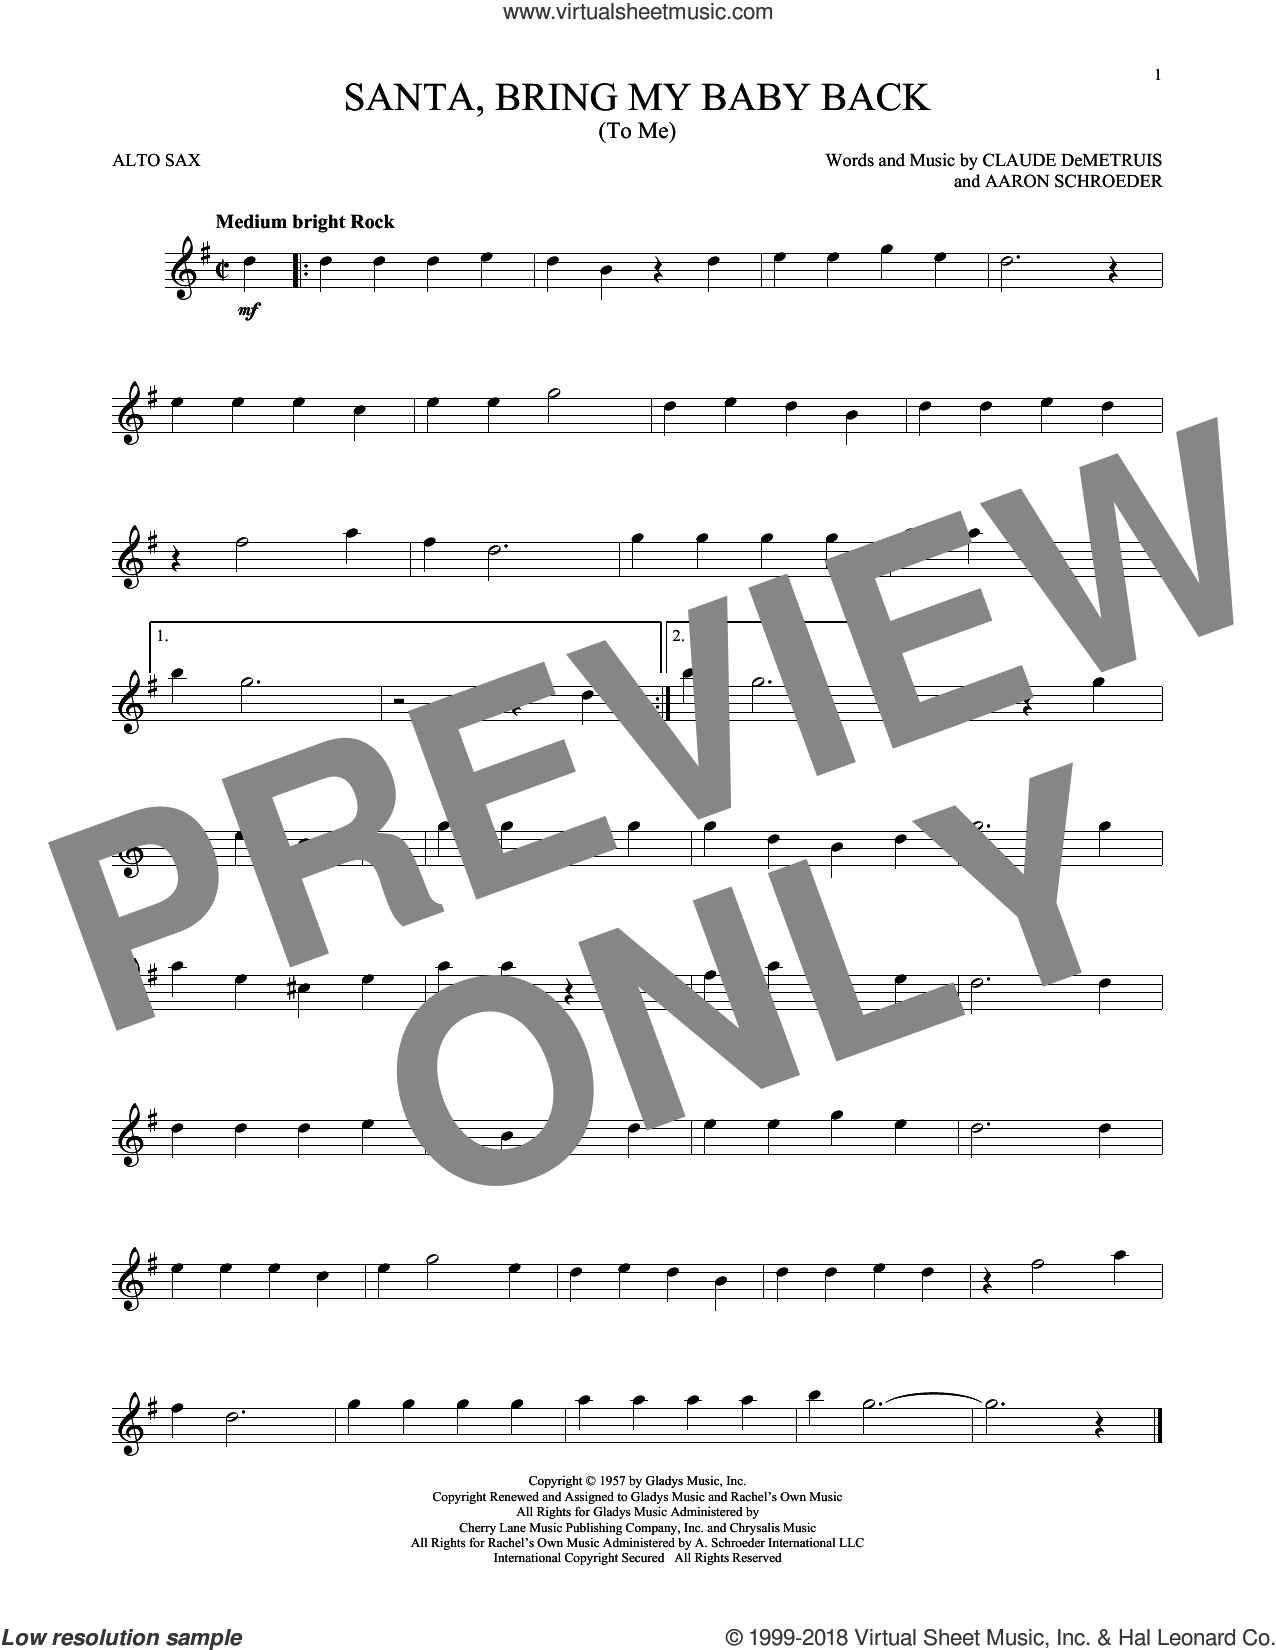 Santa, Bring My Baby Back (To Me) sheet music for alto saxophone solo by Elvis Presley, Aaron Schroeder and Claude DeMetruis, intermediate skill level